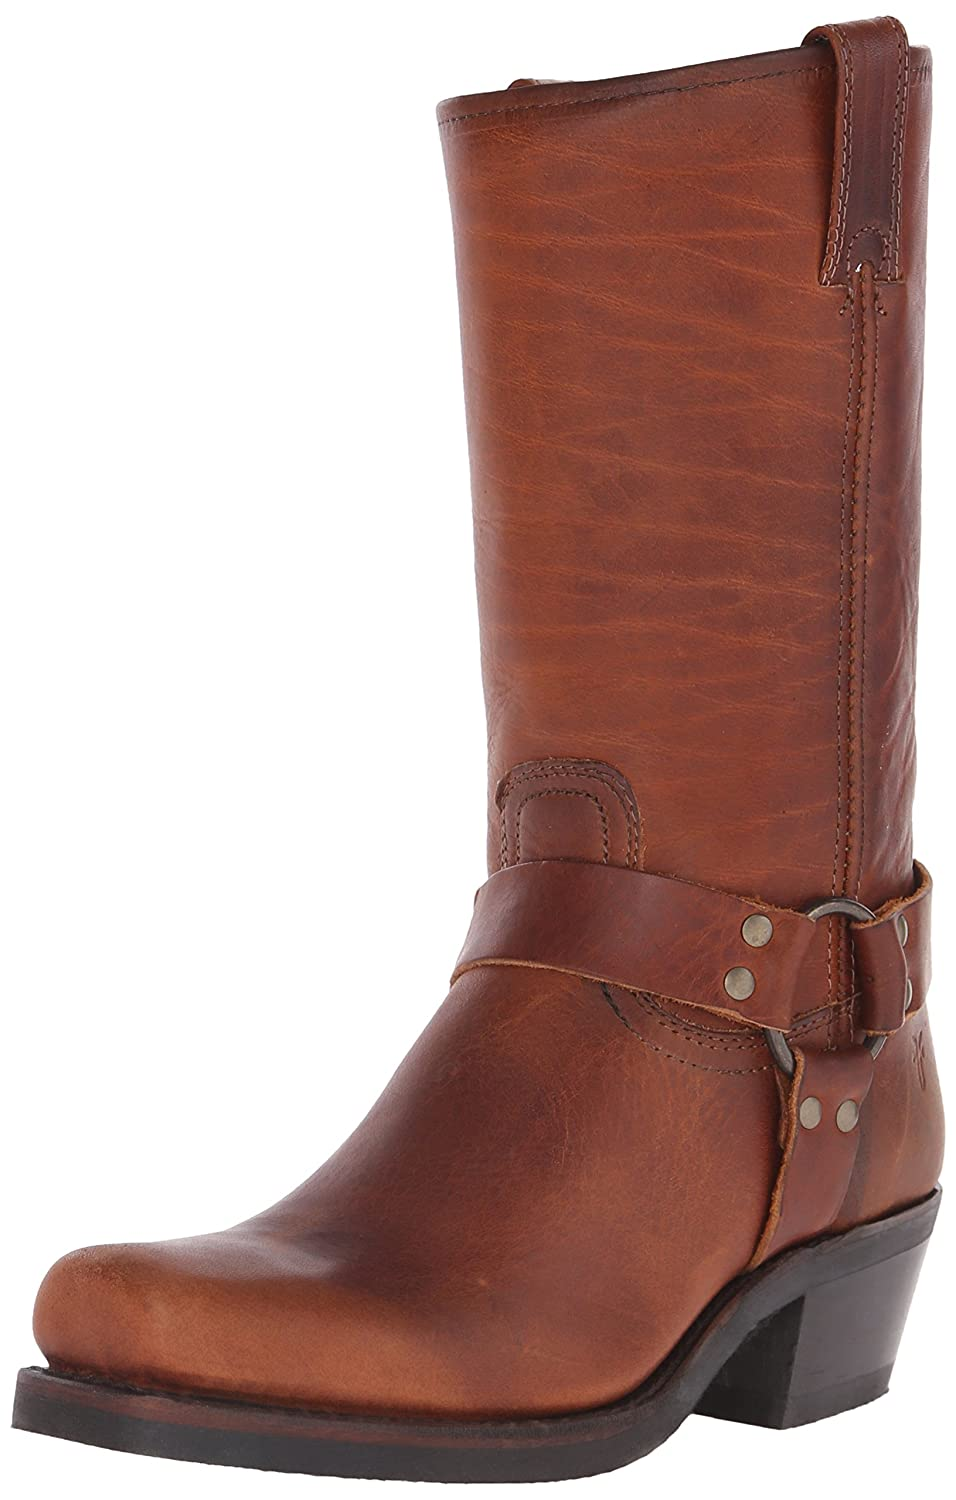 FRYE Women's 12R Harness Boot B00R54VO2C 8.5 B(M) US|Cognac Washed Oiled Vintage-77298